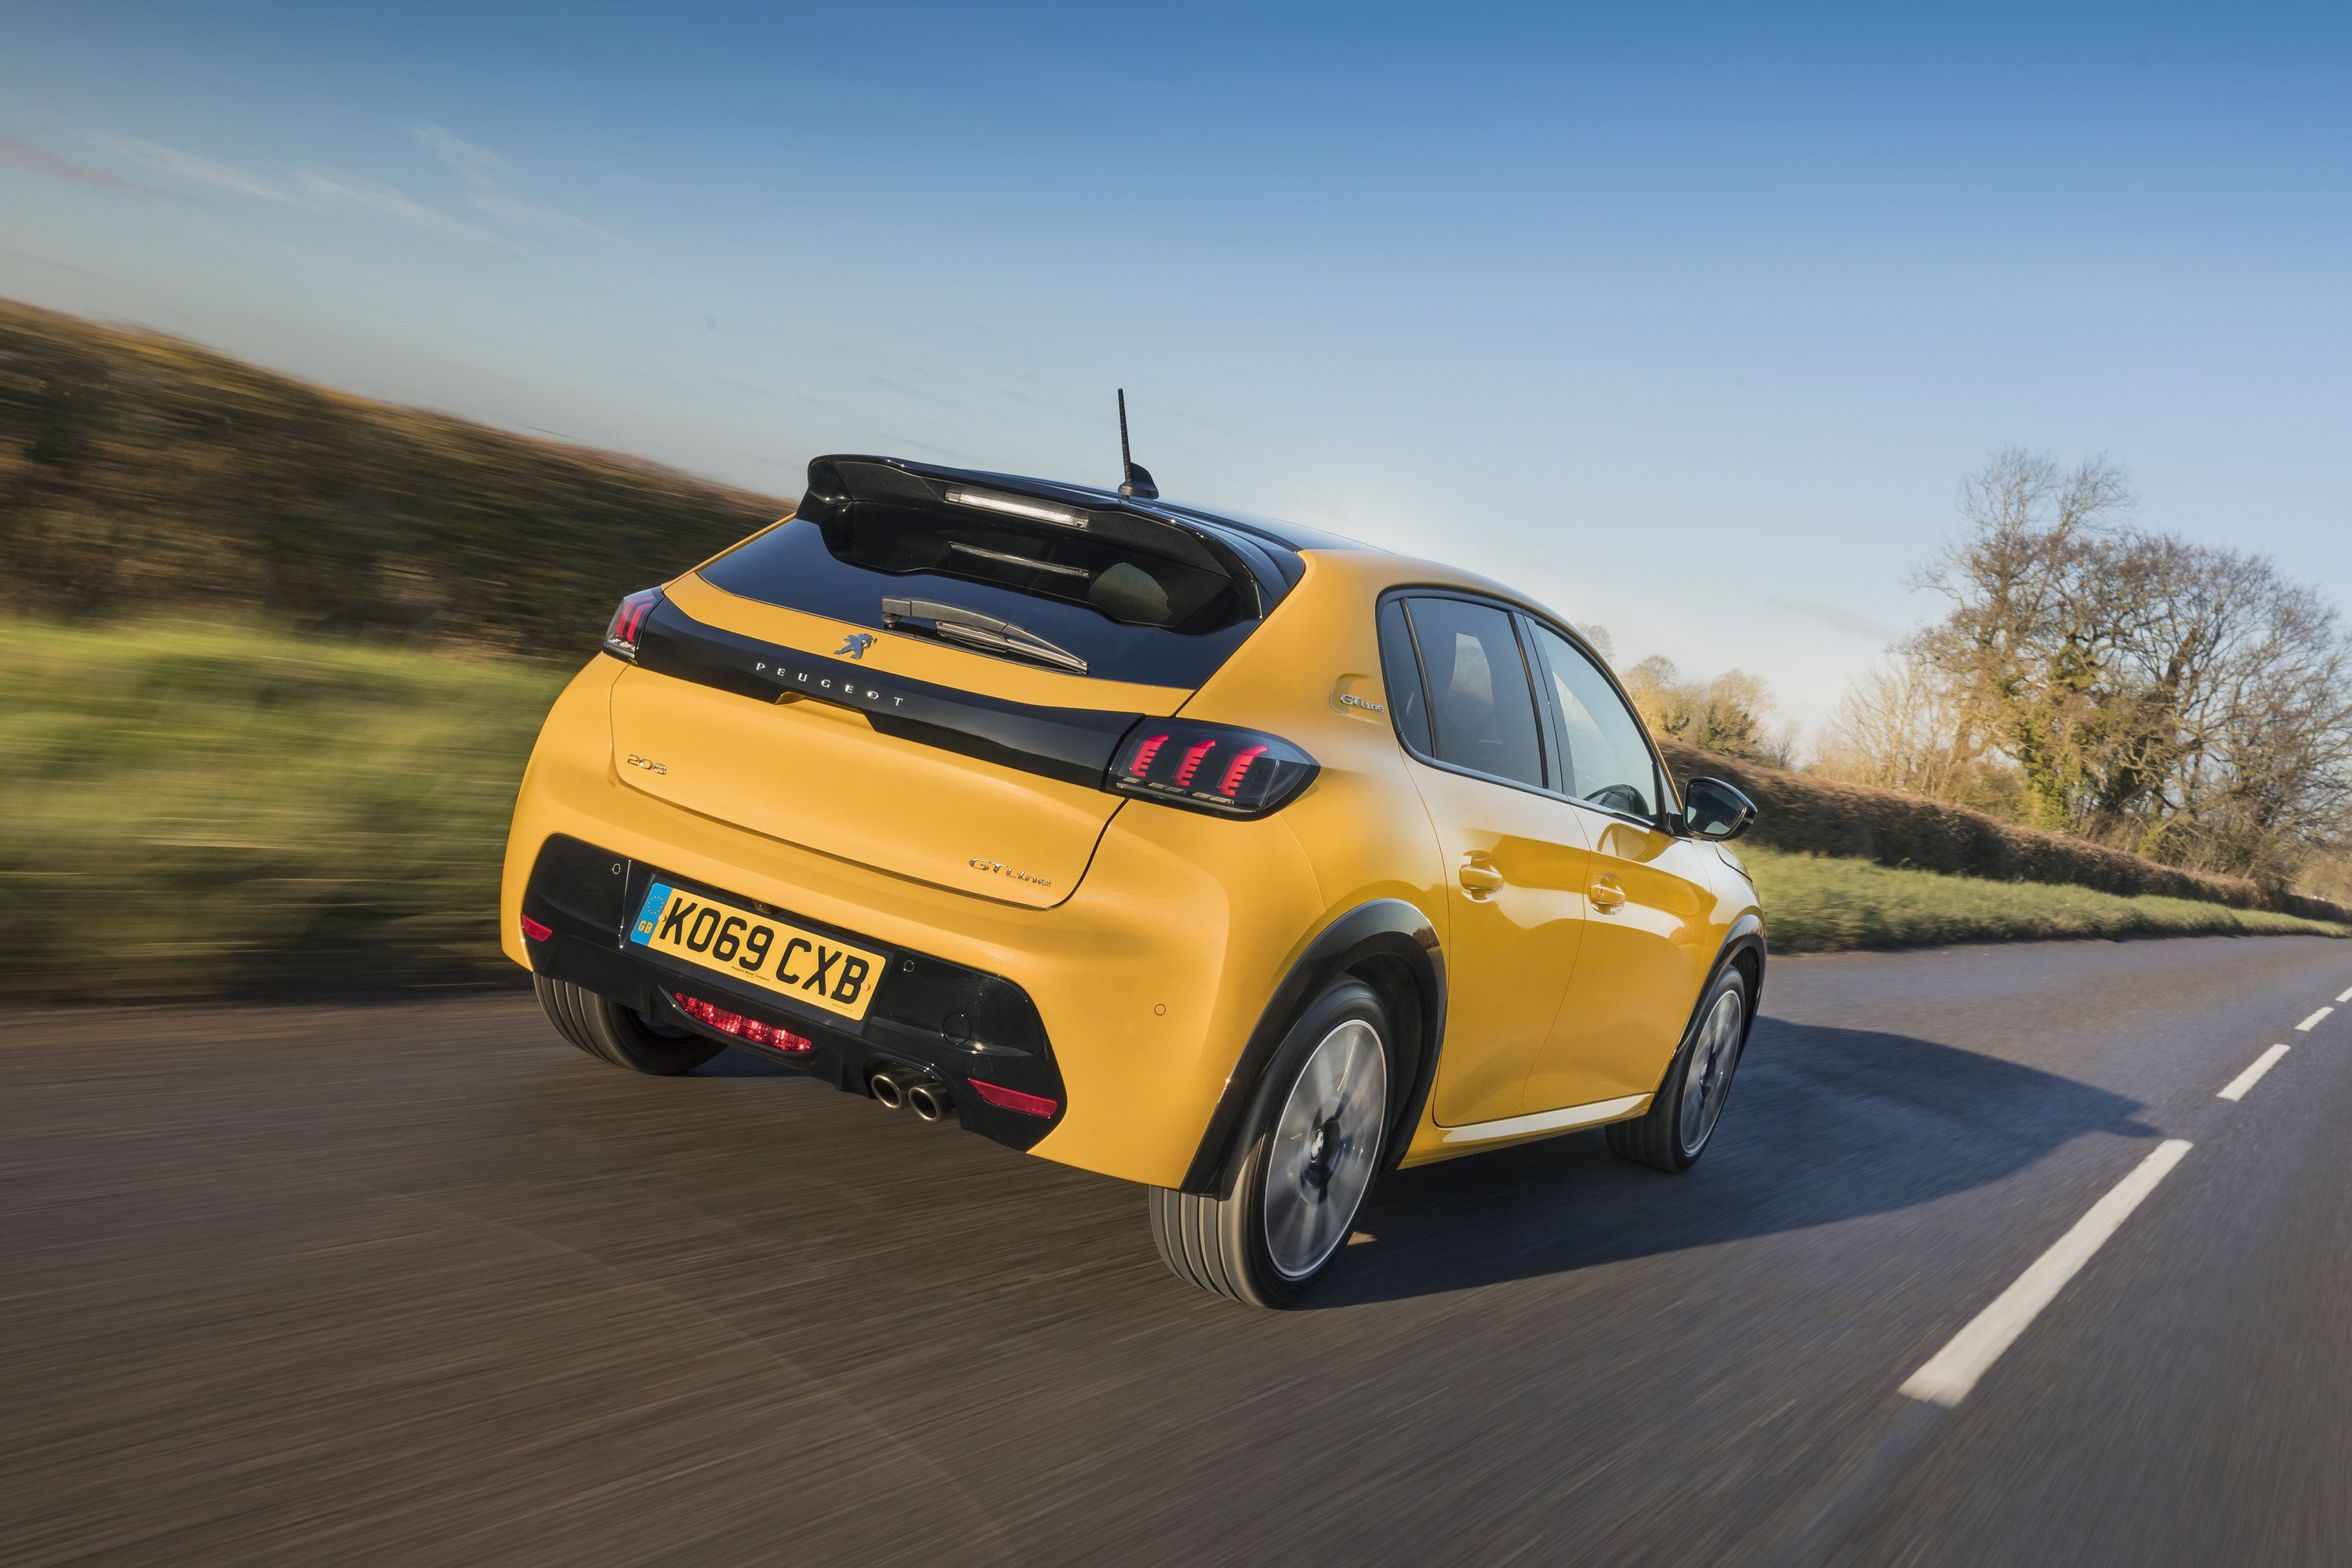 Rear view of a yellow Peugeot 208 driving on a road